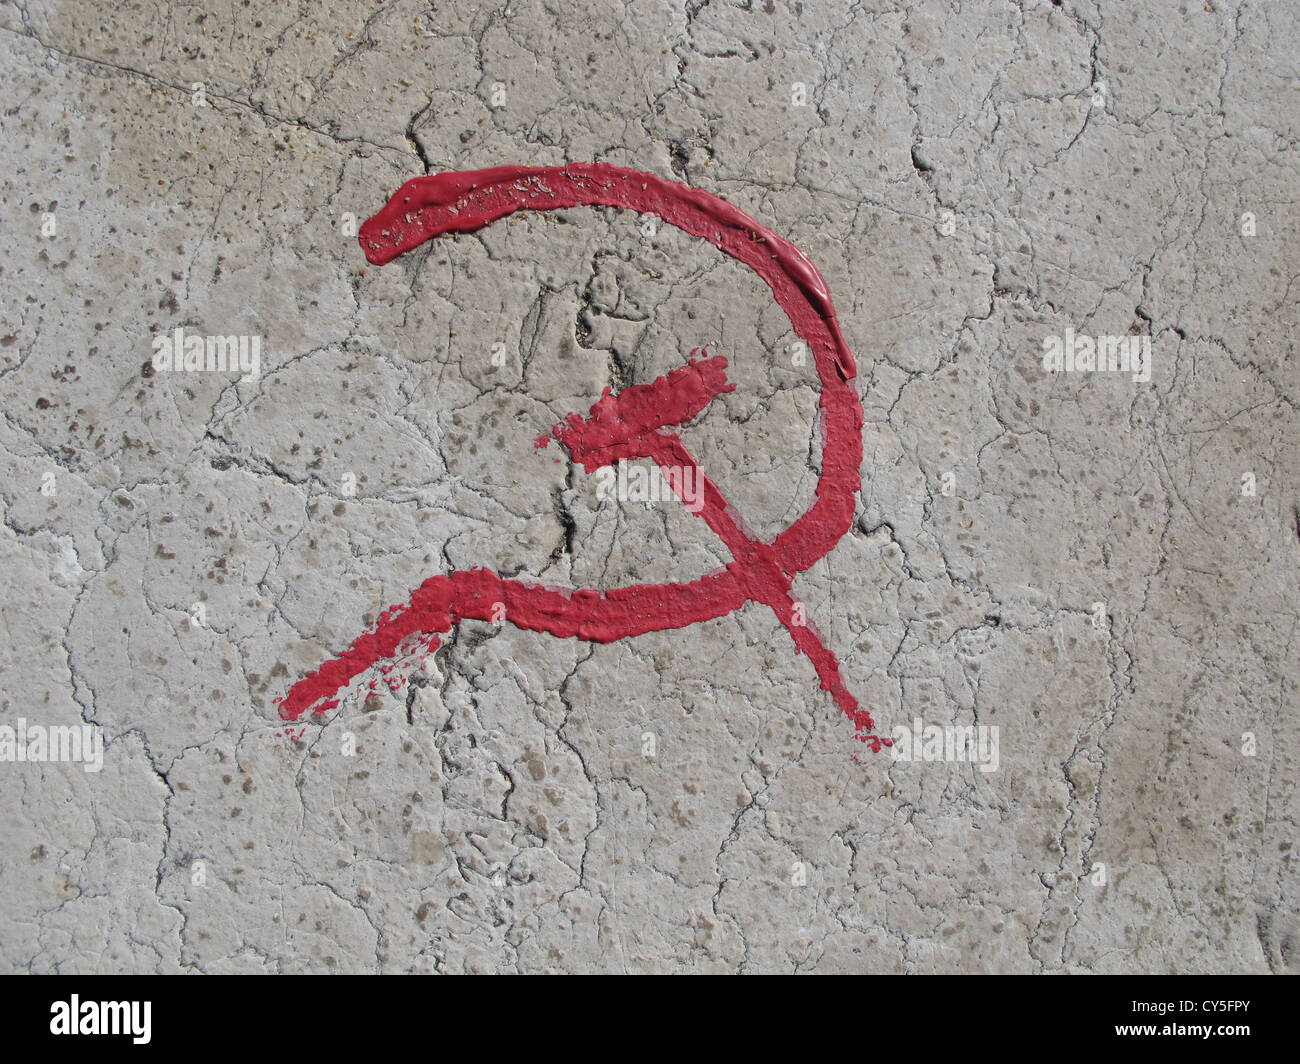 Hammer and sickle symbol painted on bridge in roma italy stock hammer and sickle symbol painted on bridge in roma italy biocorpaavc Gallery